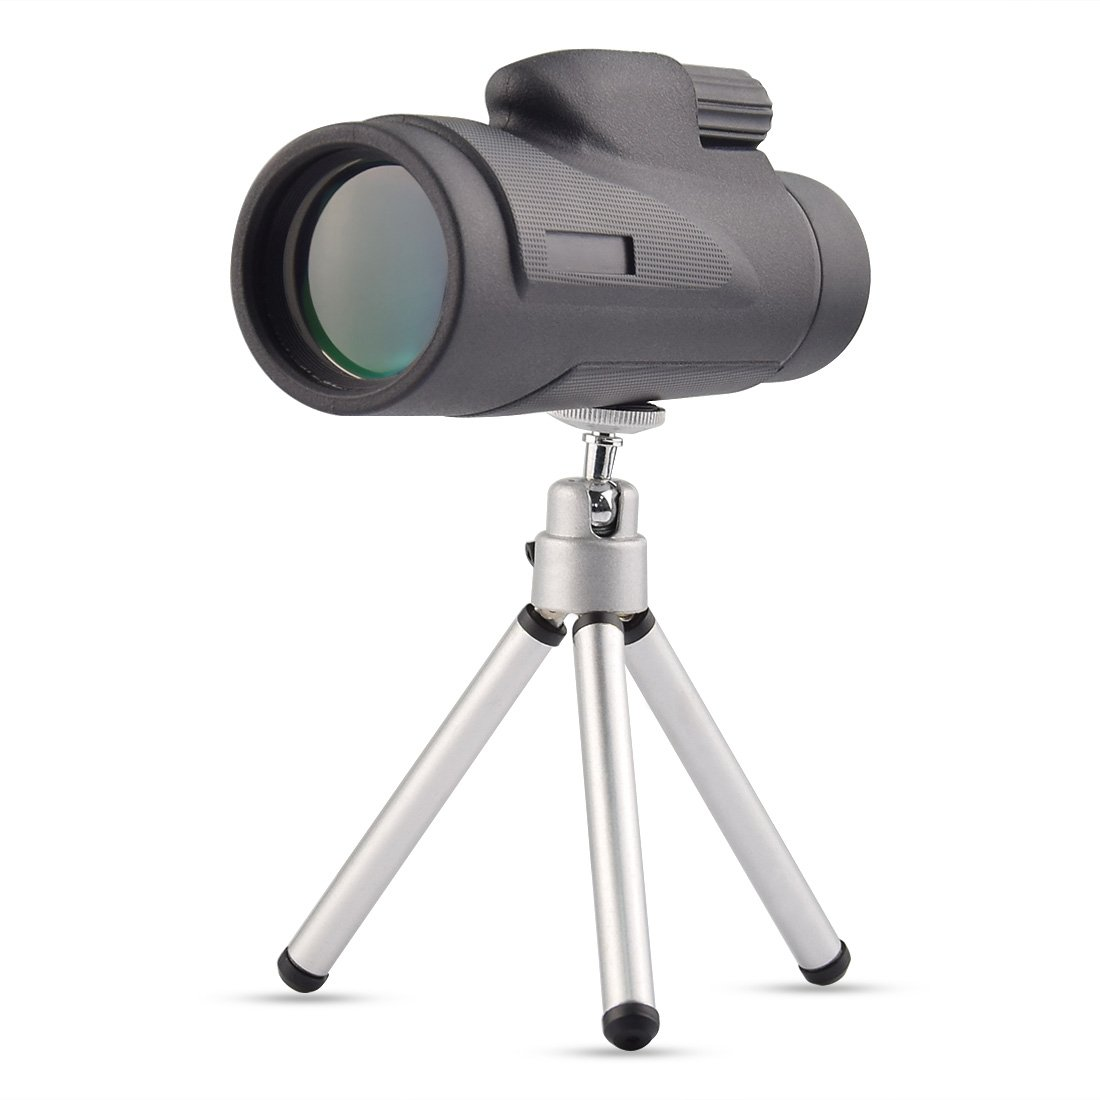 Twod 12X50 Monocular High Definition Spotting Scope Portable With Tripod, Carrying Bag for Birds Watching, Hunting, Camping, Wildlife, Black